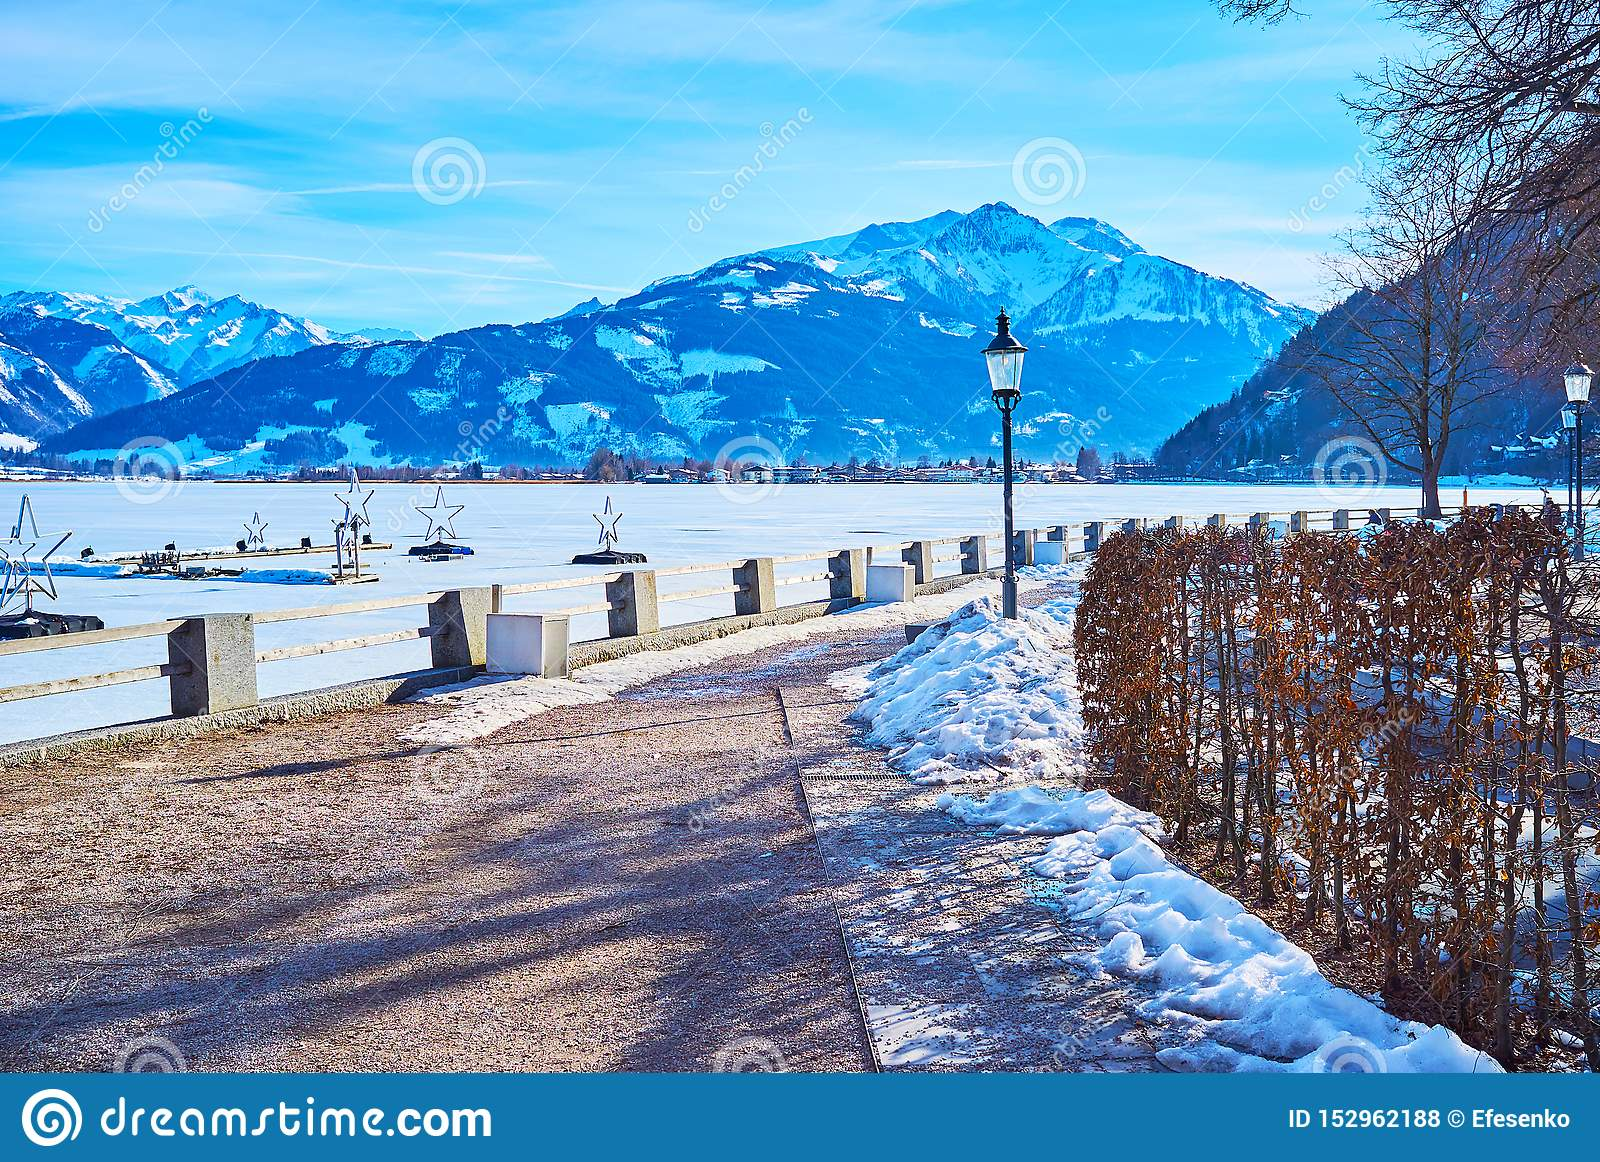 Winter in Zell am See, Austria